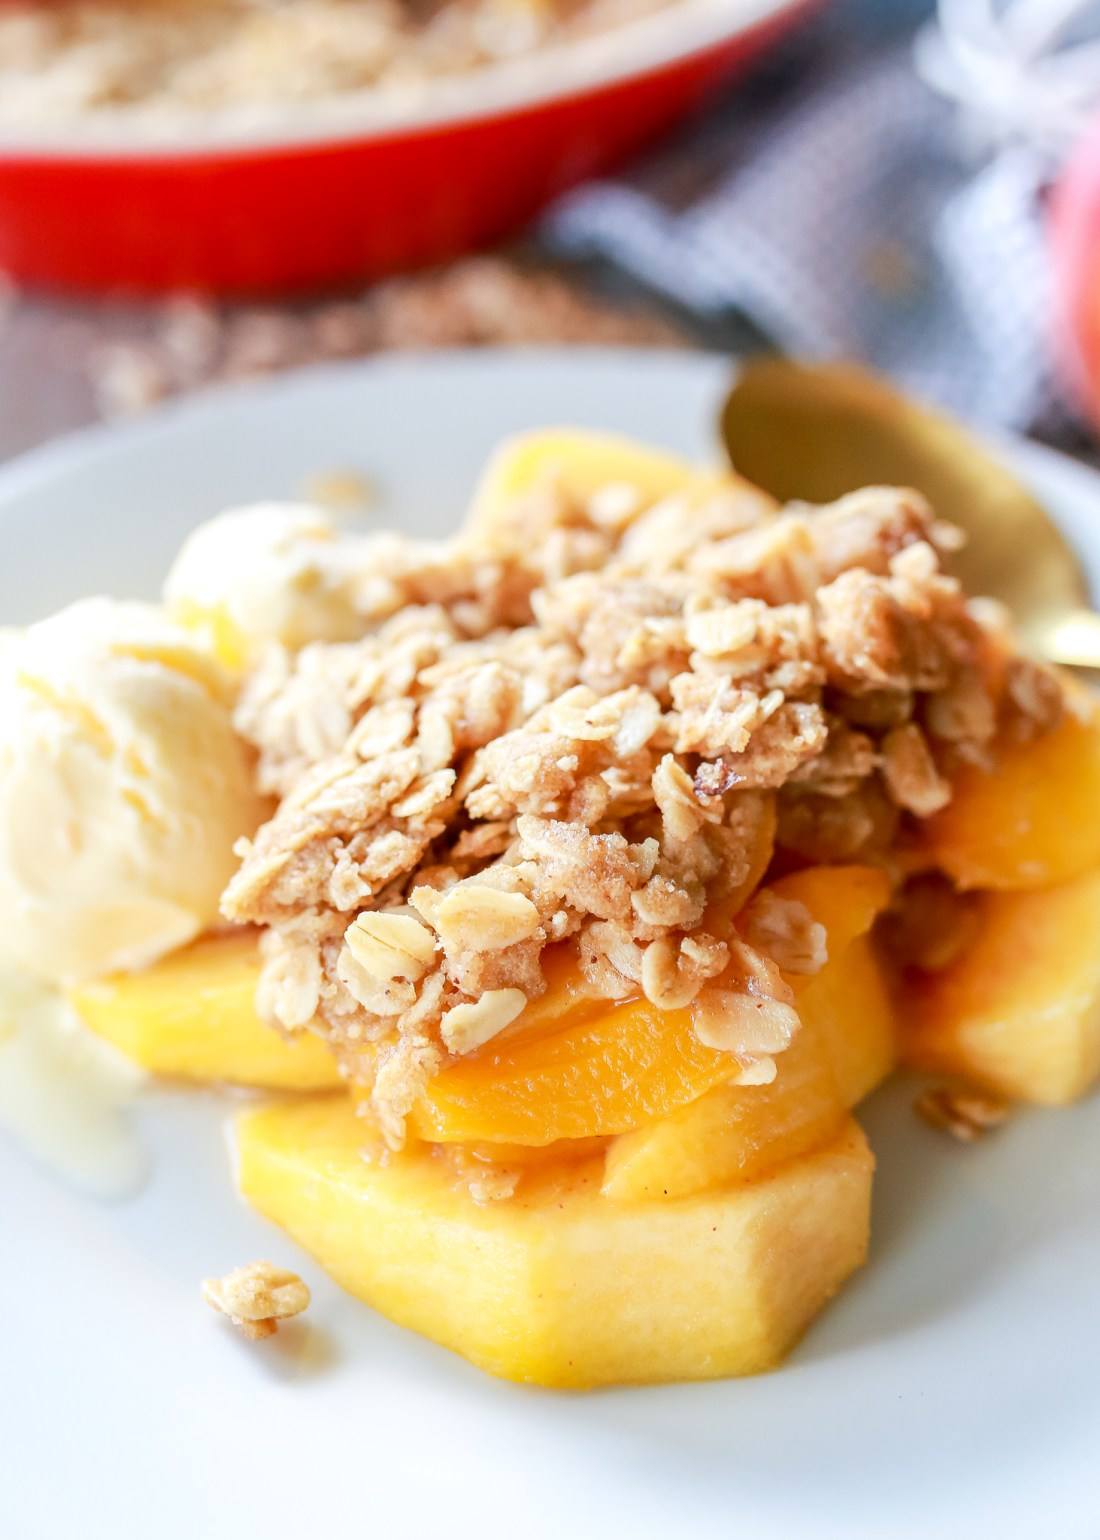 Incredible Peach Crisp recipe with brown butter streusel!!!